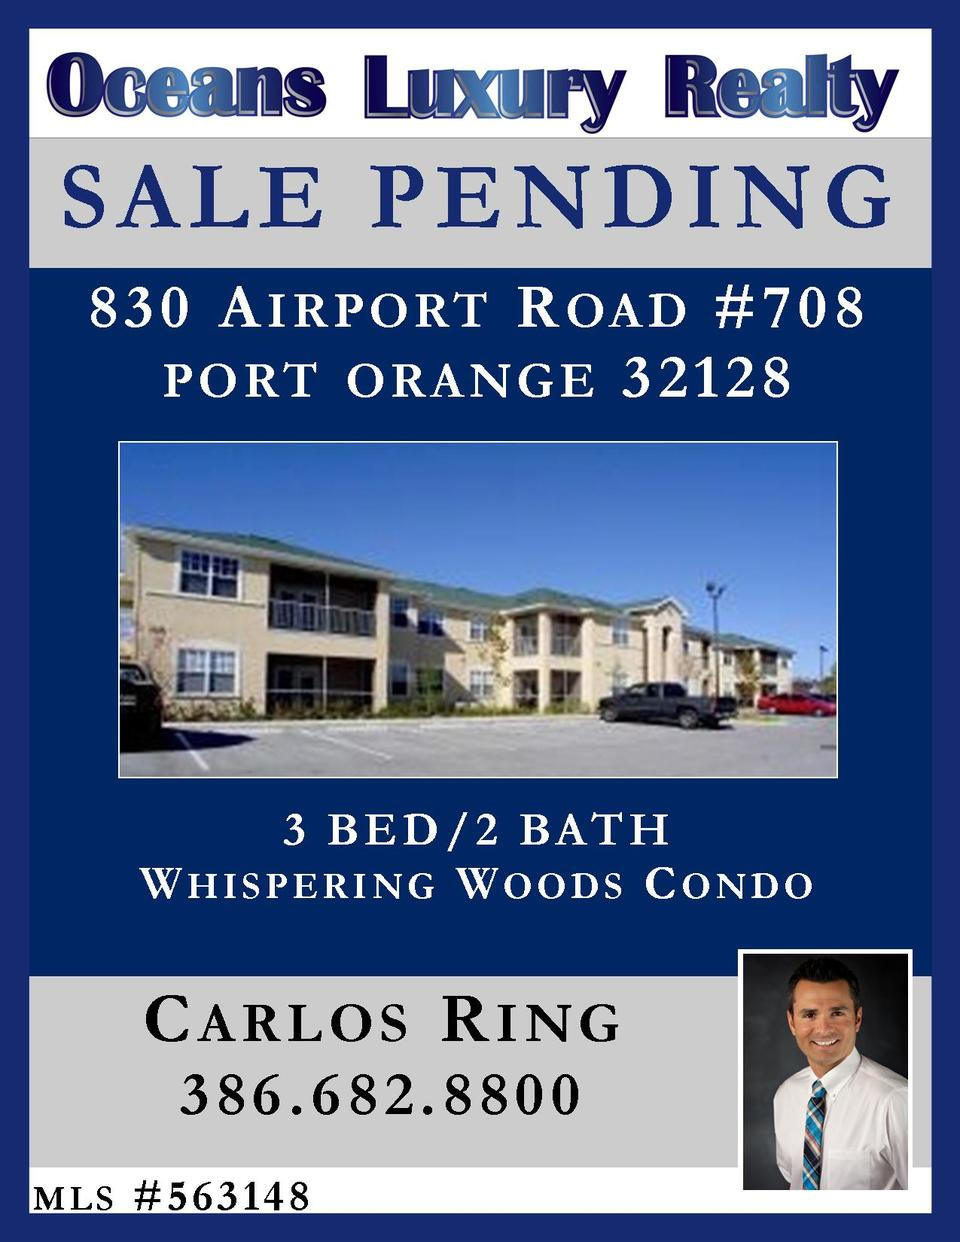 AIRPORT RD IS NOW UNDER CONTRACT!